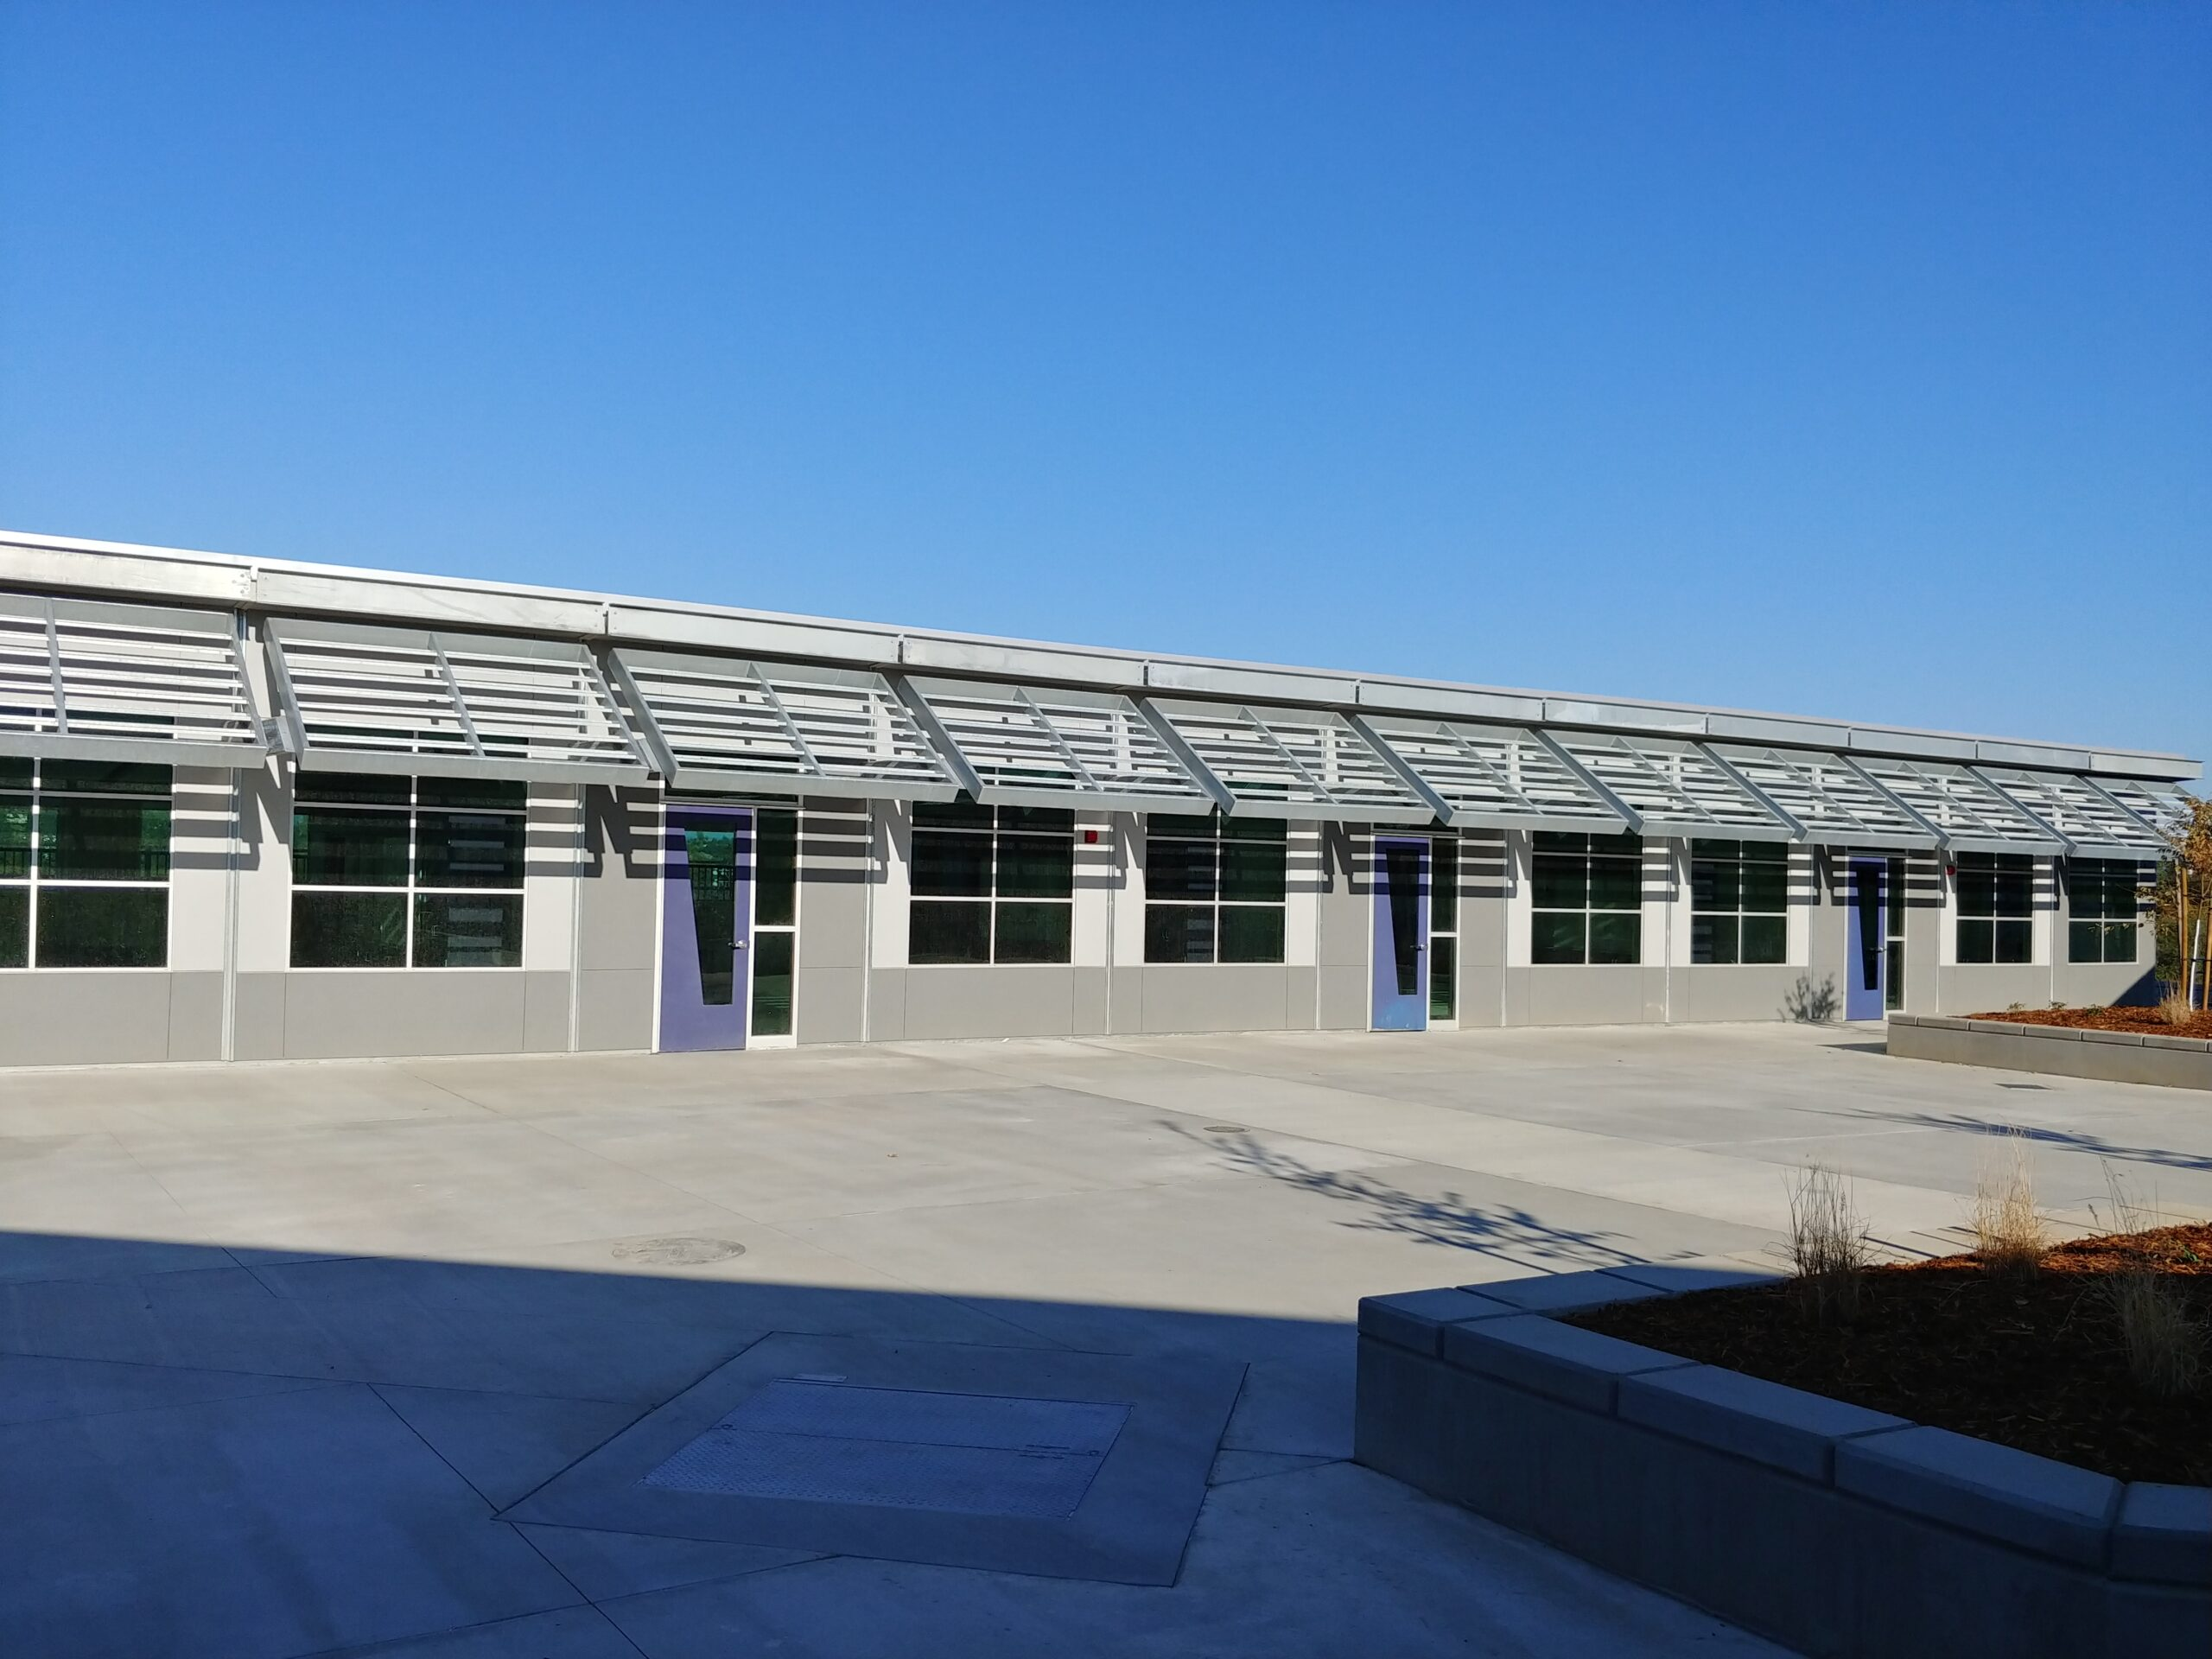 Shasta High School Gen 7 STEM Buildings and Site Improvements